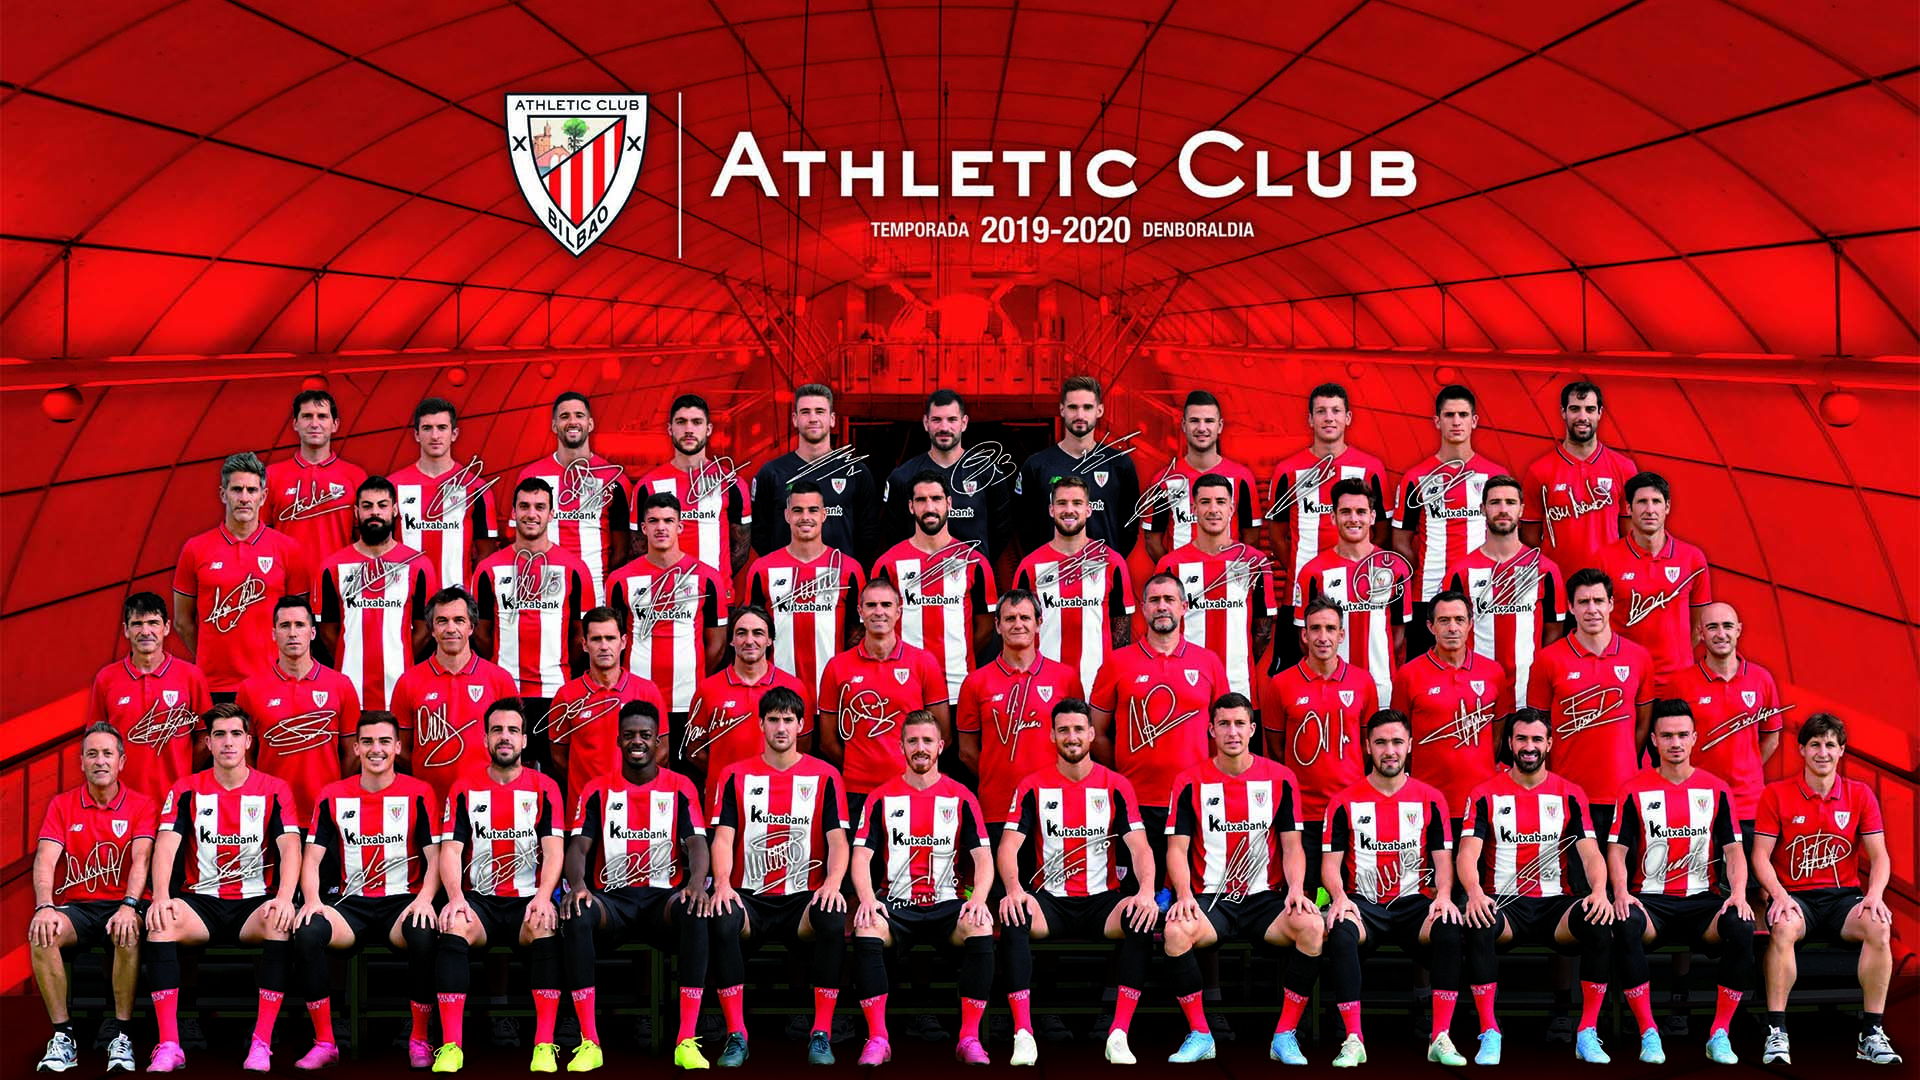 Póster oficial del Athletic Club 2019/20